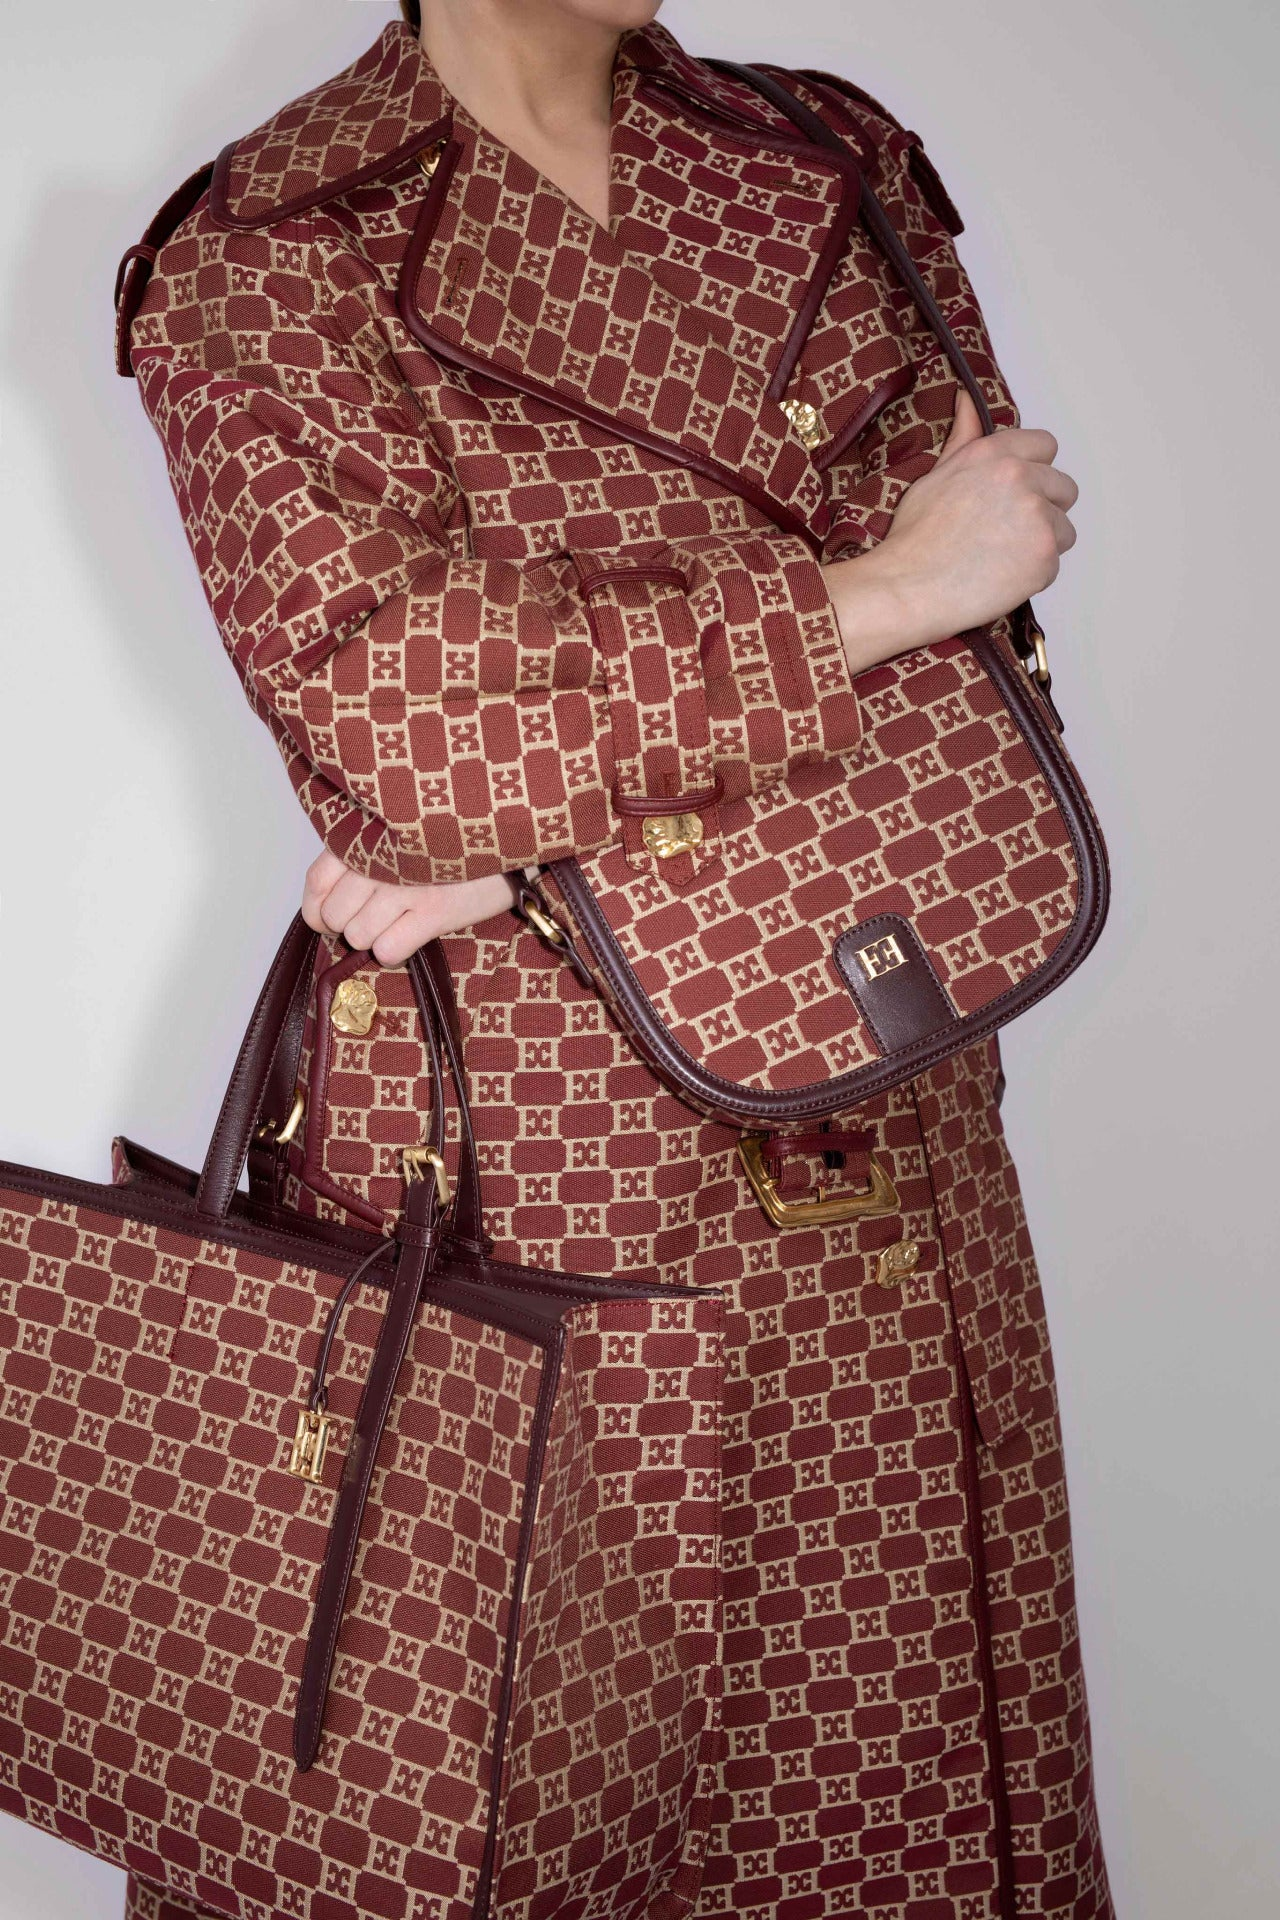 ESCADA Fall/Winter 2020 Jaquard logo coat and bags